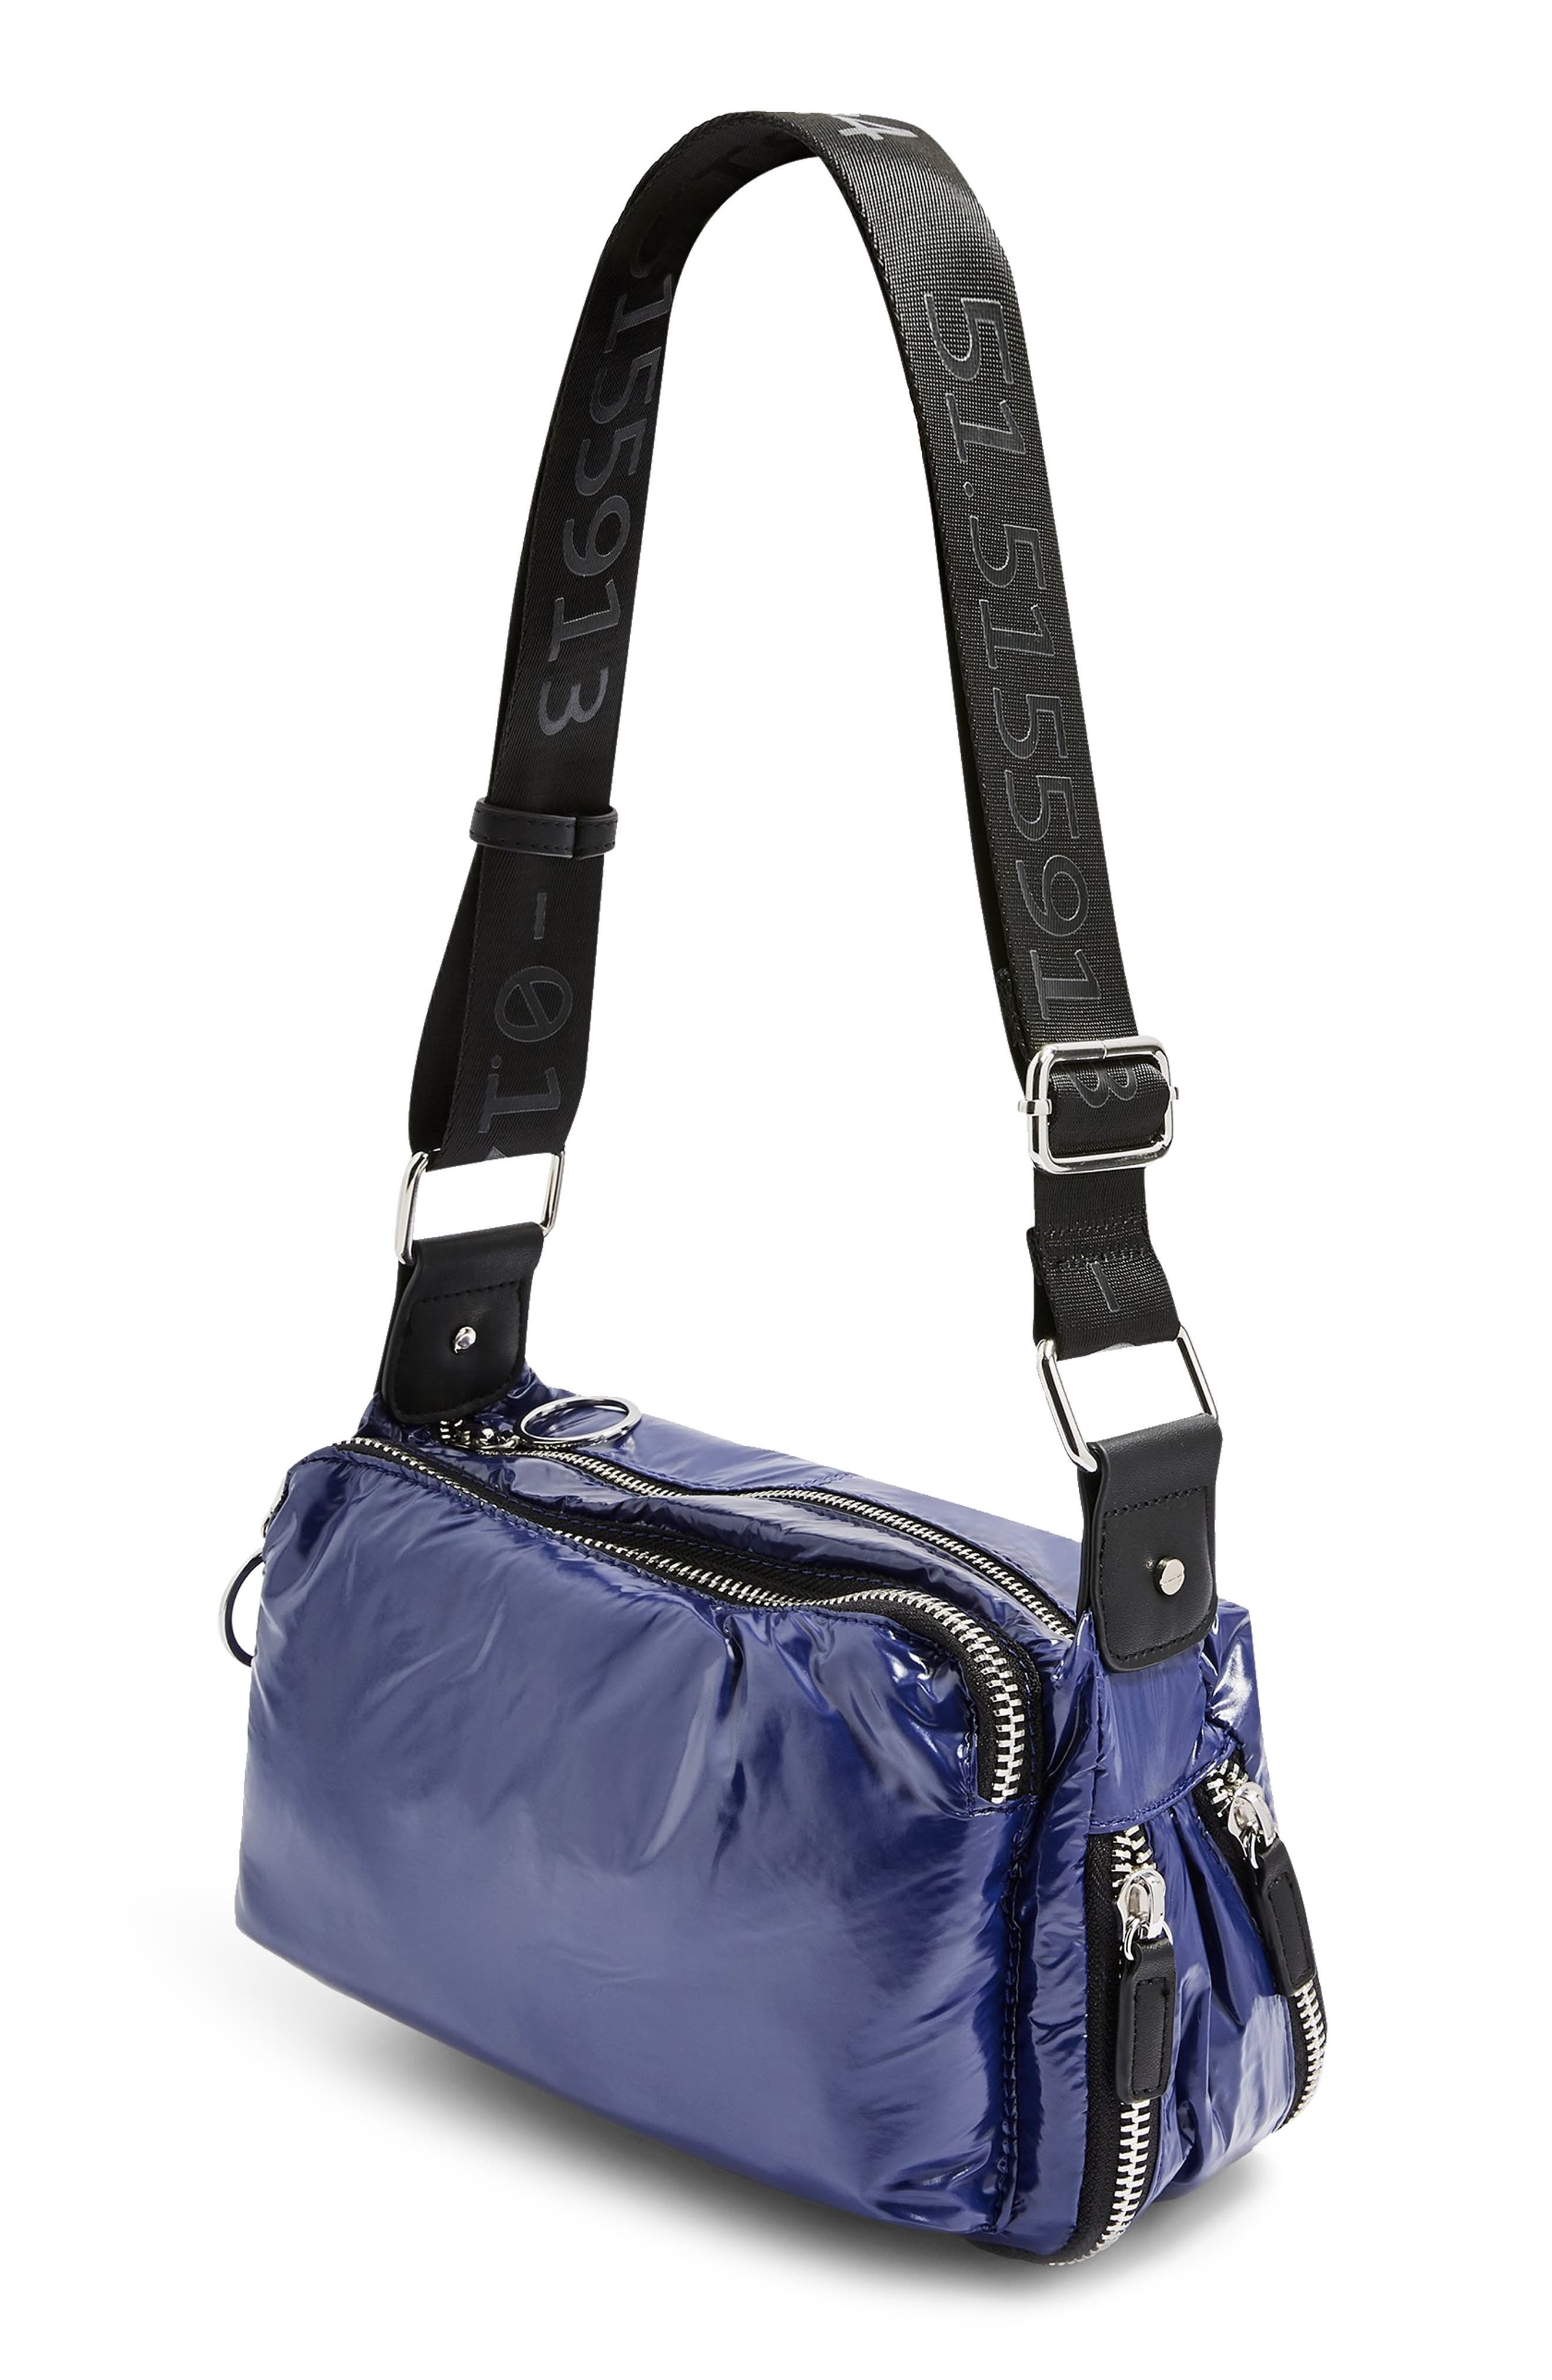 Tokyo Shoulder Bag,                             Alternate thumbnail 3, color,                             430